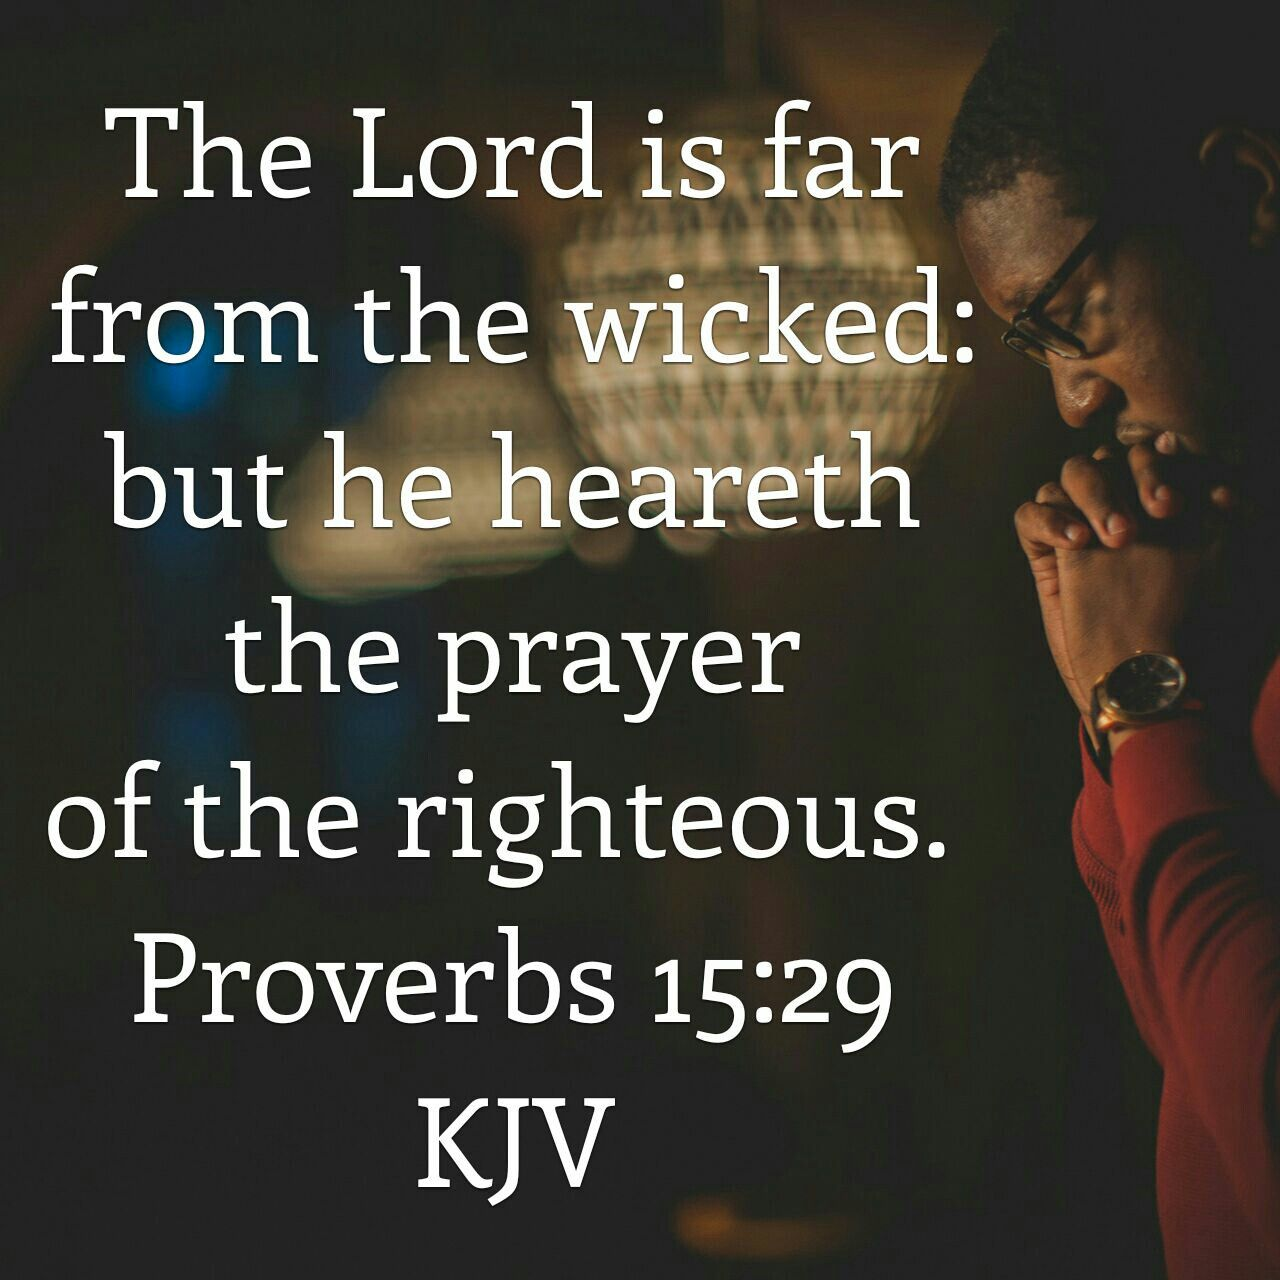 Proverbs 15 : 29 KJV | Prayers of the righteous, King james bible, Inspirational  quotes